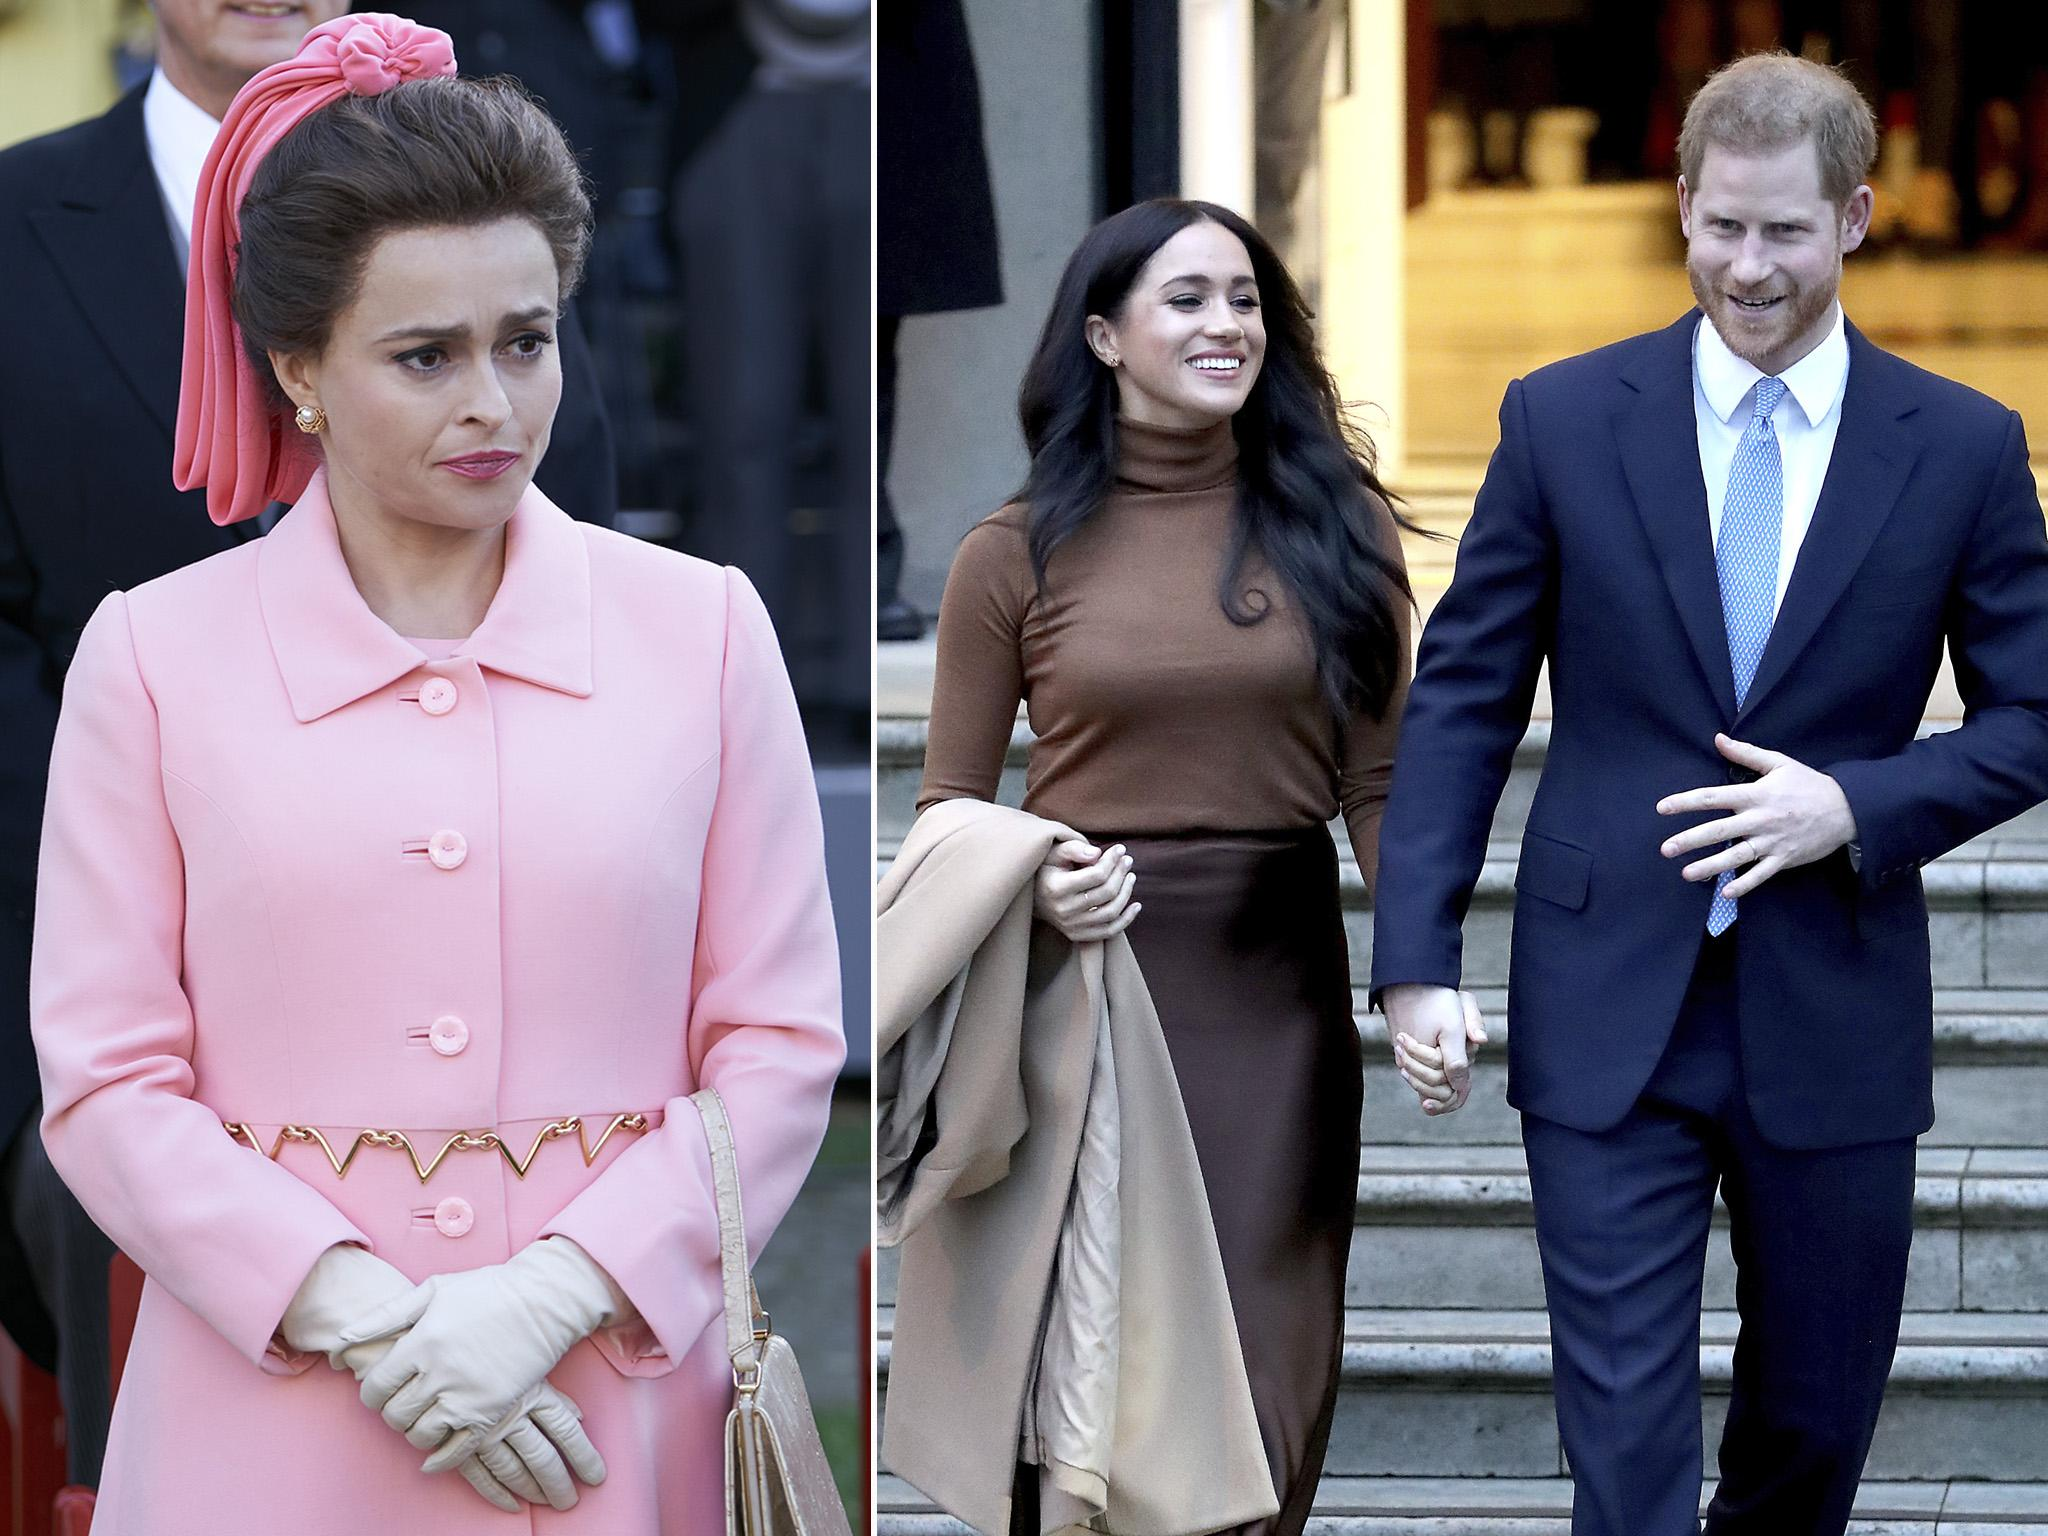 The Crown star Helena Bonham Carter says Harry and Meghan are 'masters of their own destiny'